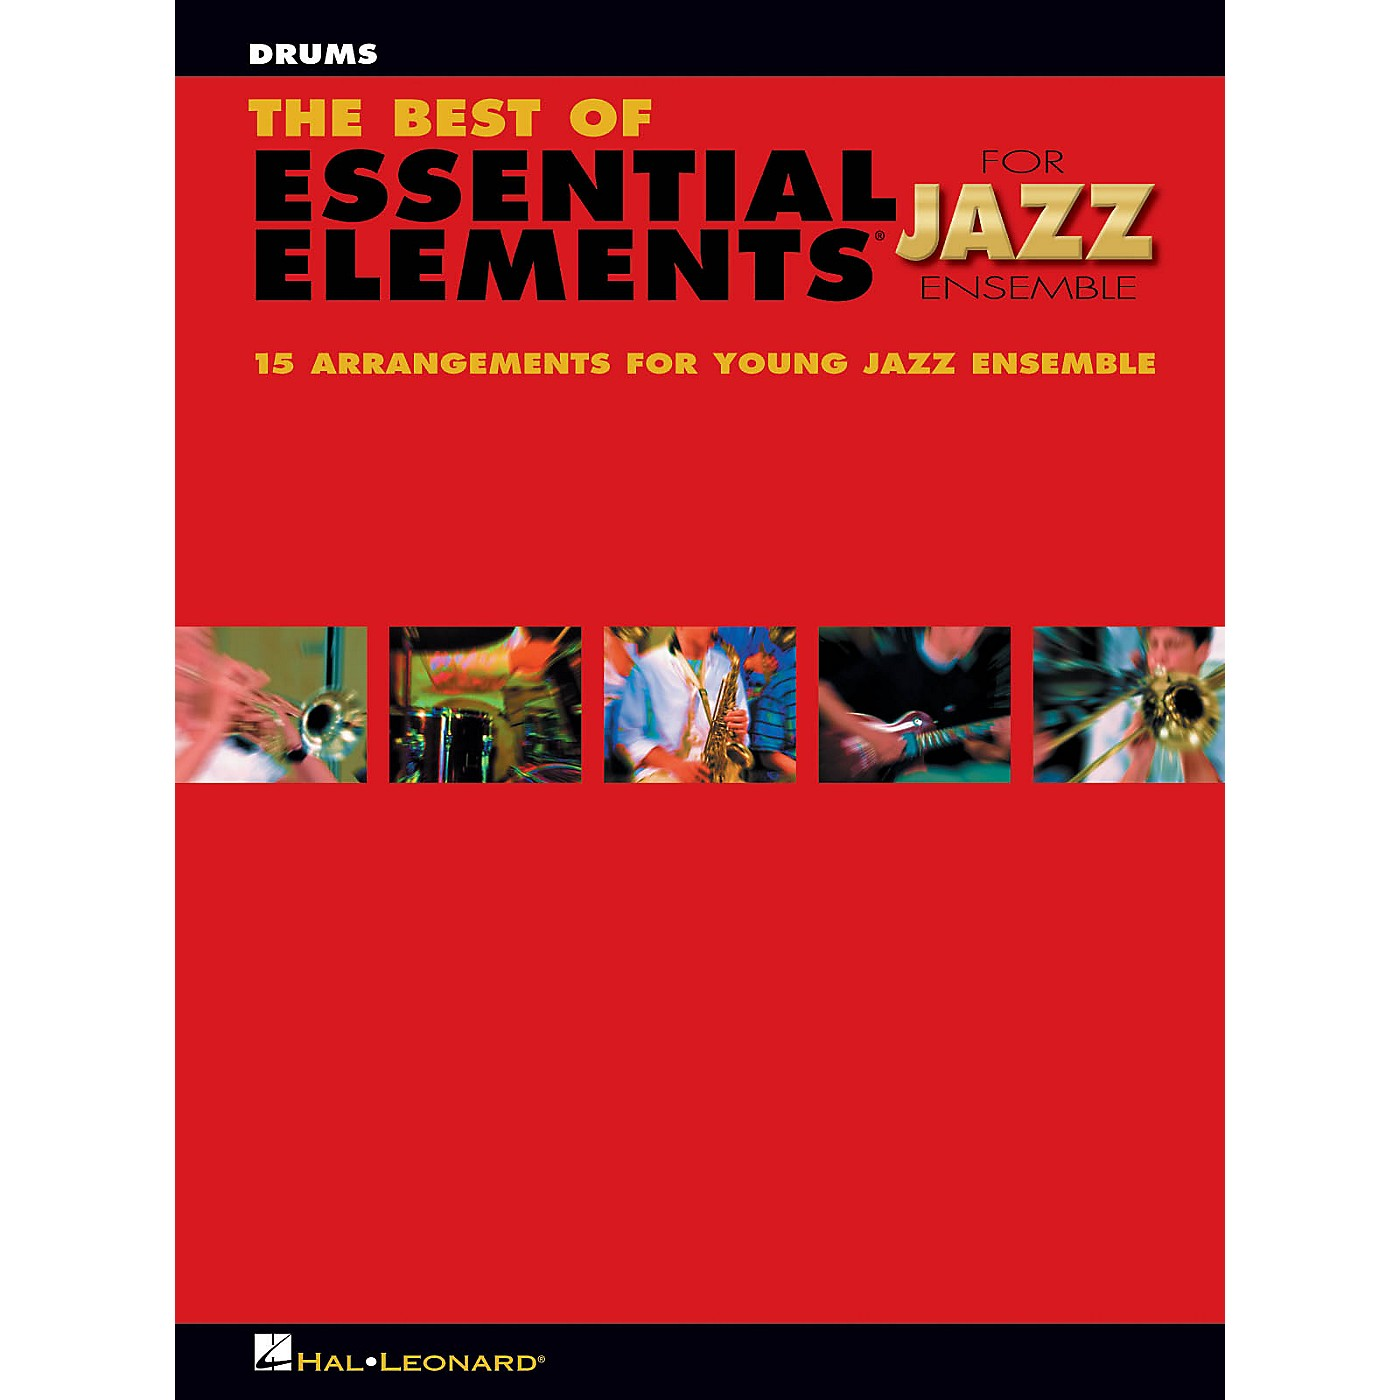 Hal Leonard The Best of Essential Elements for Jazz Ensemble Jazz Band Level 1-2 Composed by Michael Sweeney thumbnail